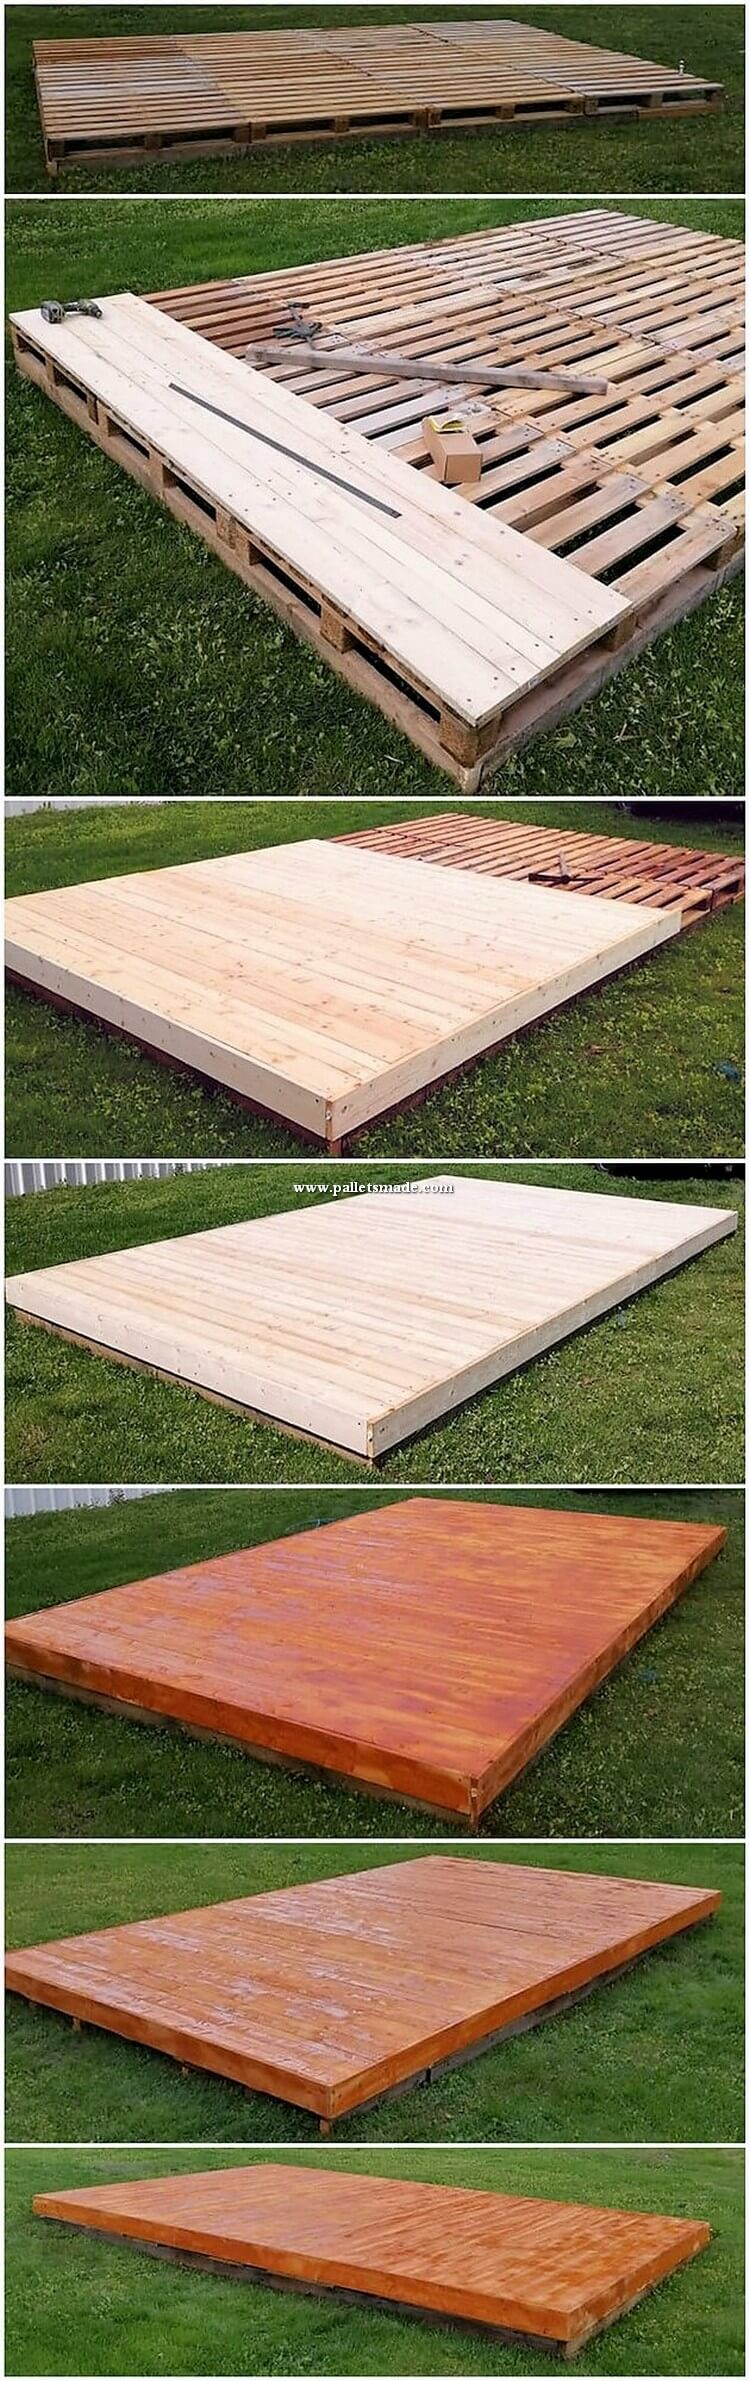 DIY Wood Pallet Garden Terrace